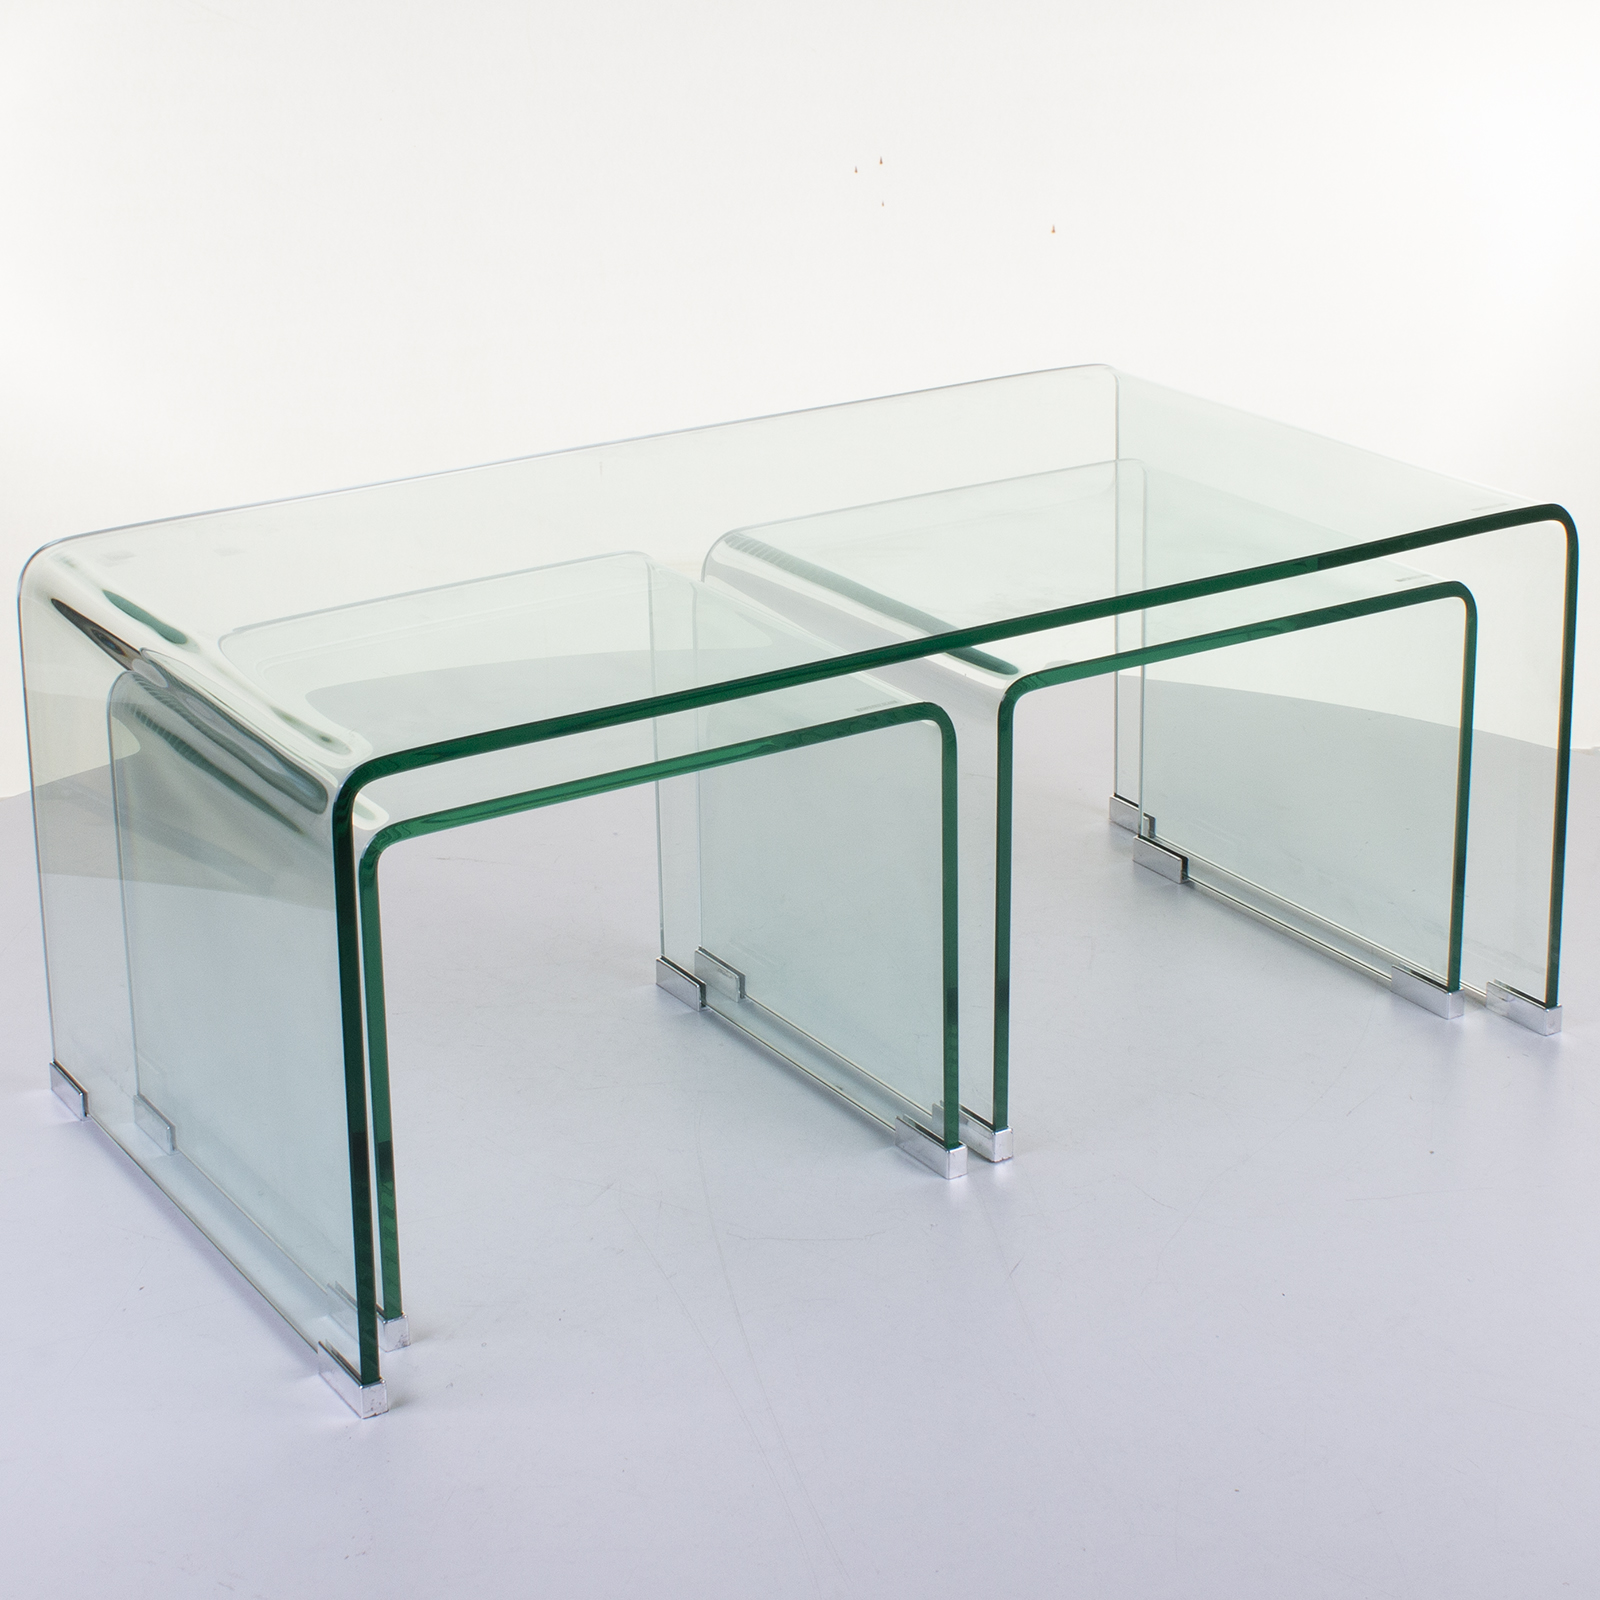 Curved Glass Tables Coffee Dining Console Furniture Bent Single Piece Modern New Ebay [ 1600 x 1600 Pixel ]